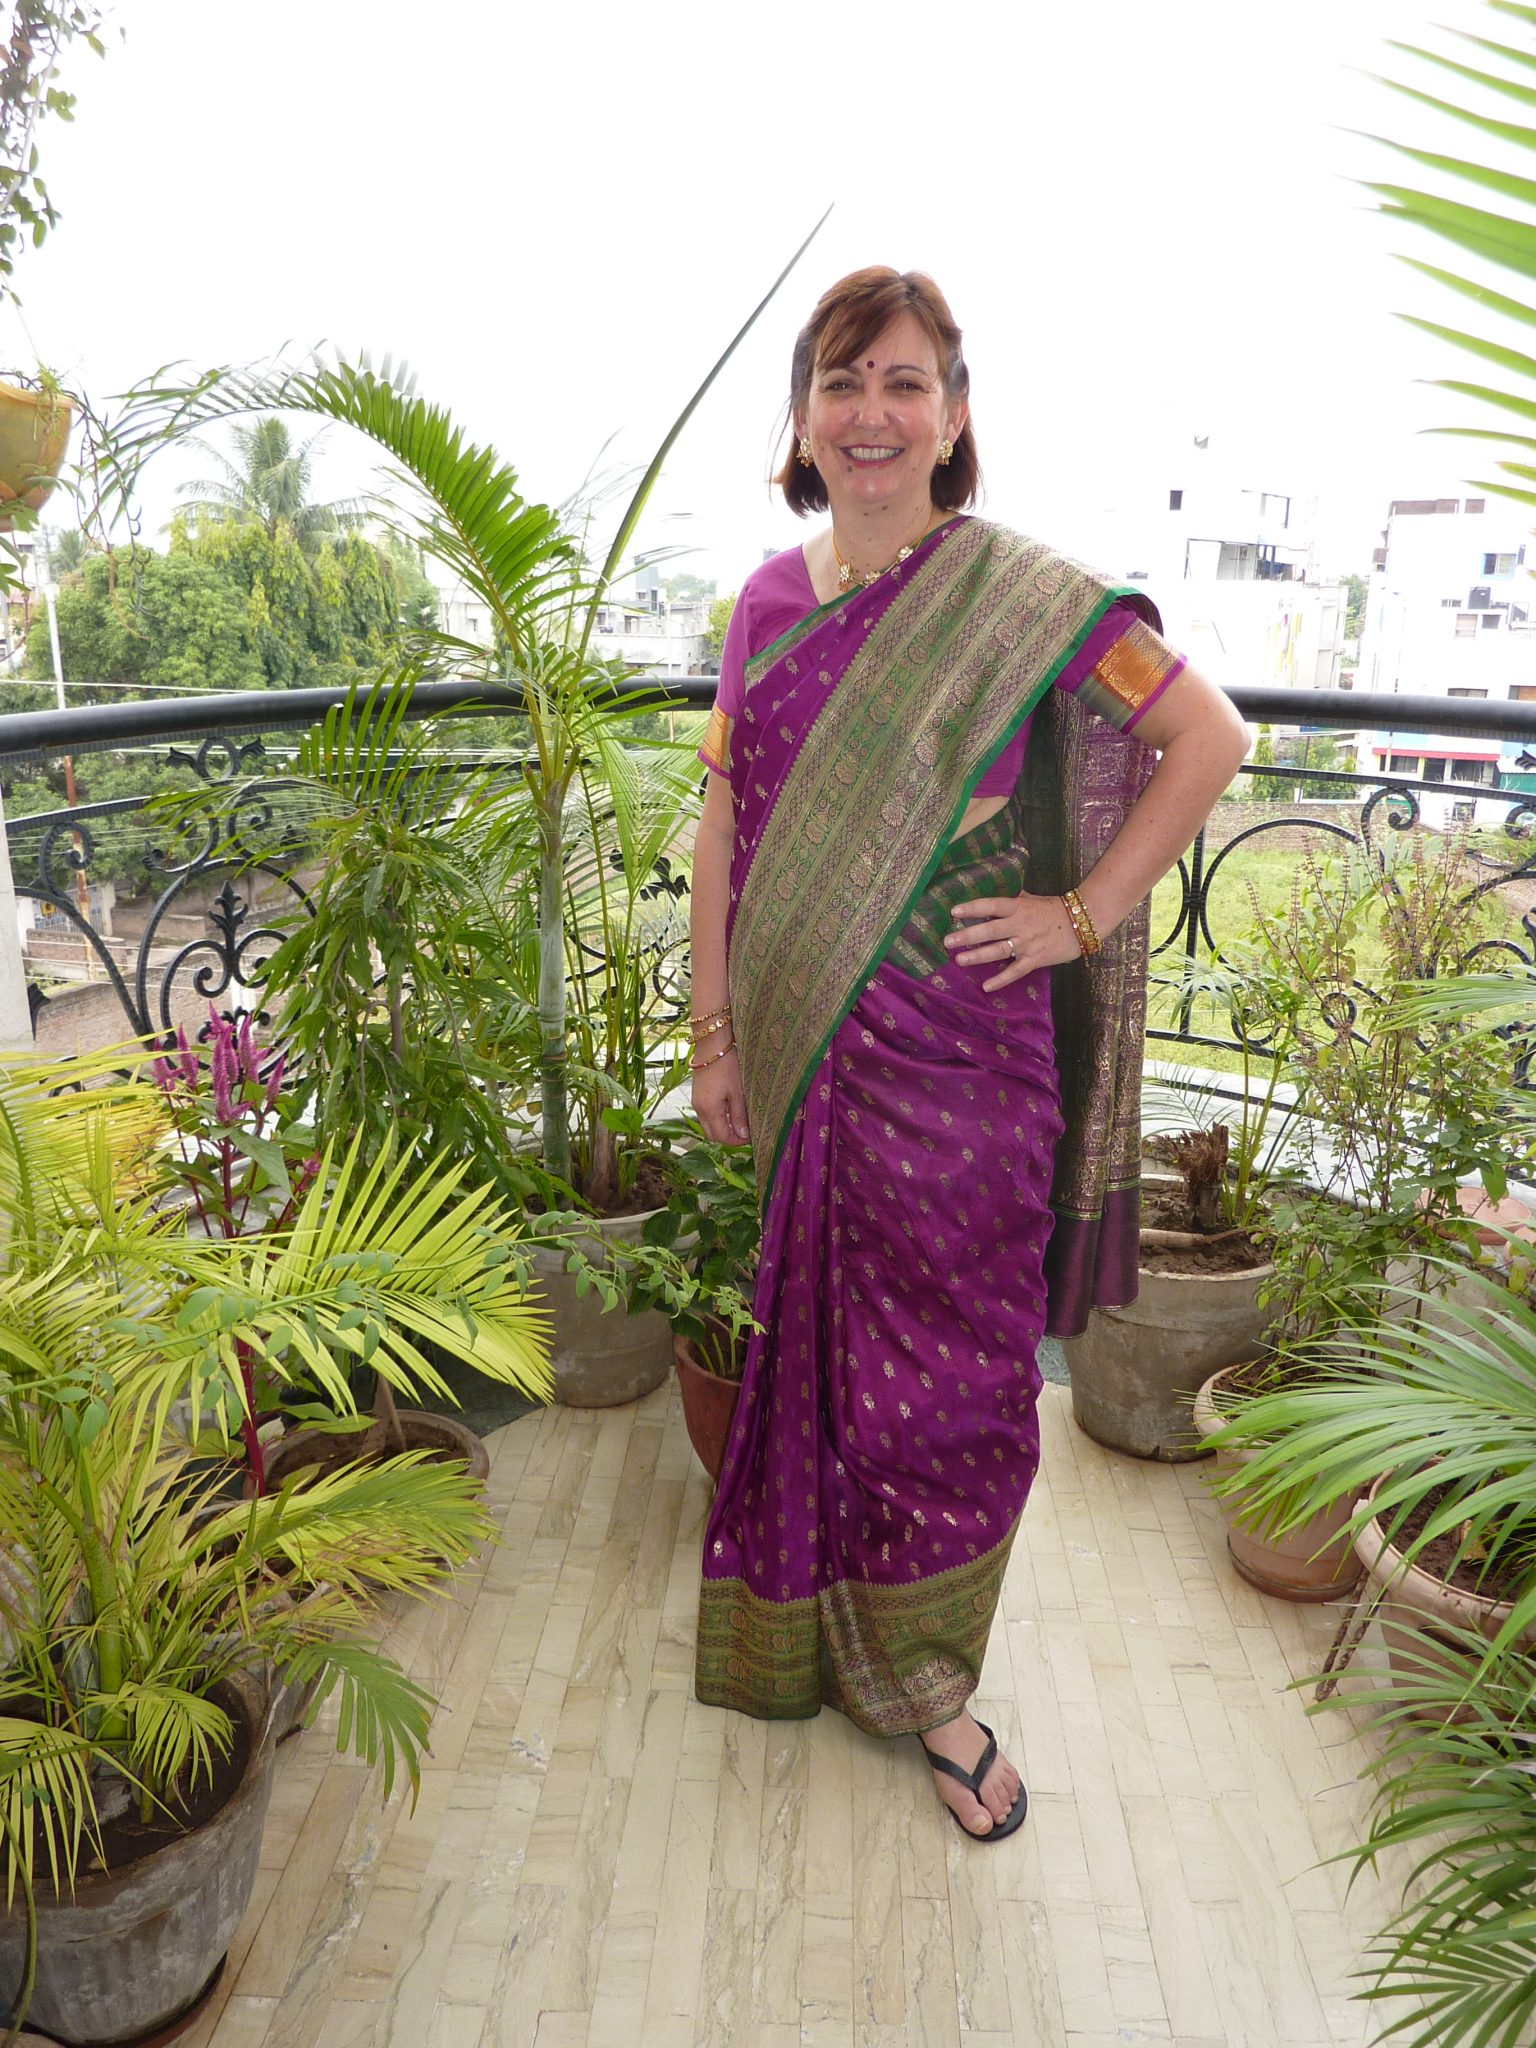 Another amazing sari on our Incredible India trip